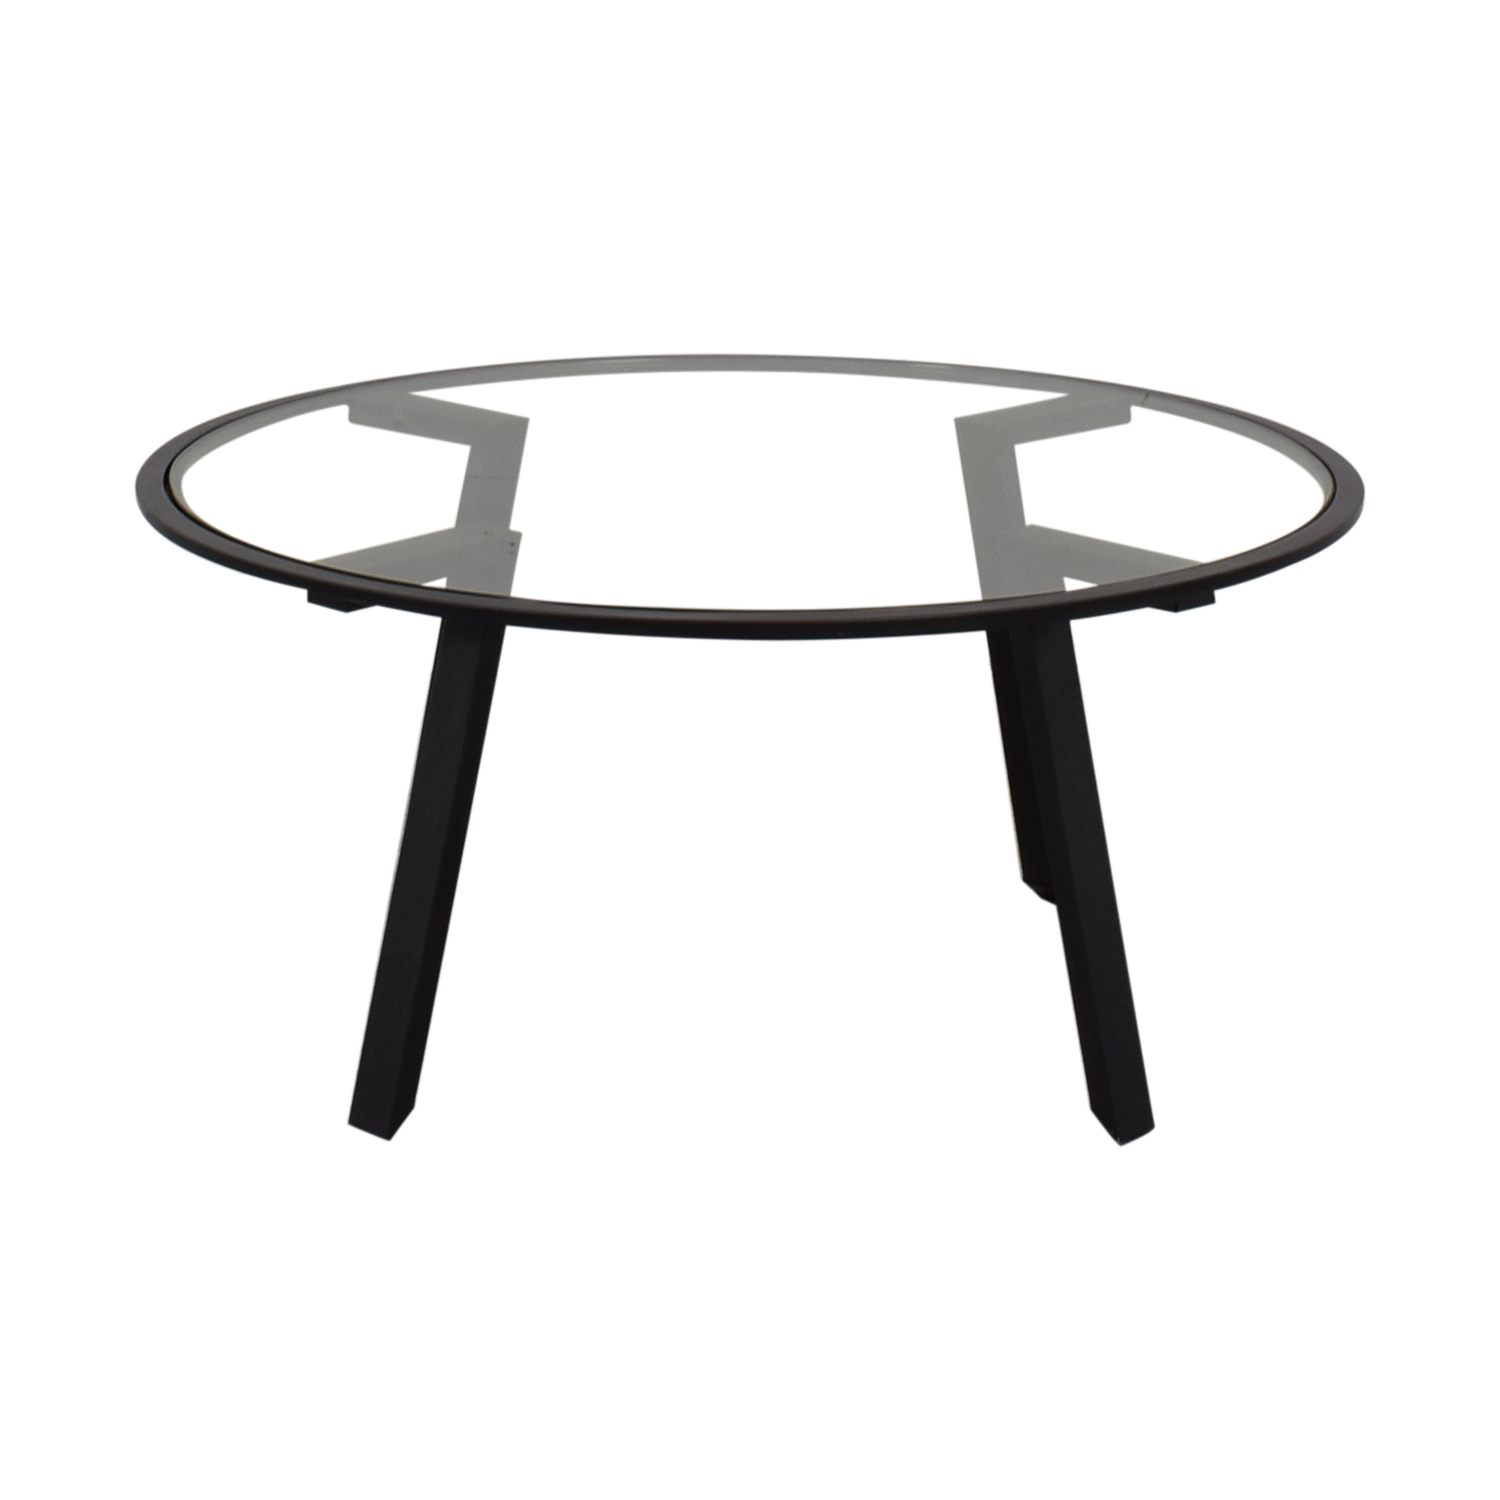 90 off homegoods homegoods round glass coffee table tables